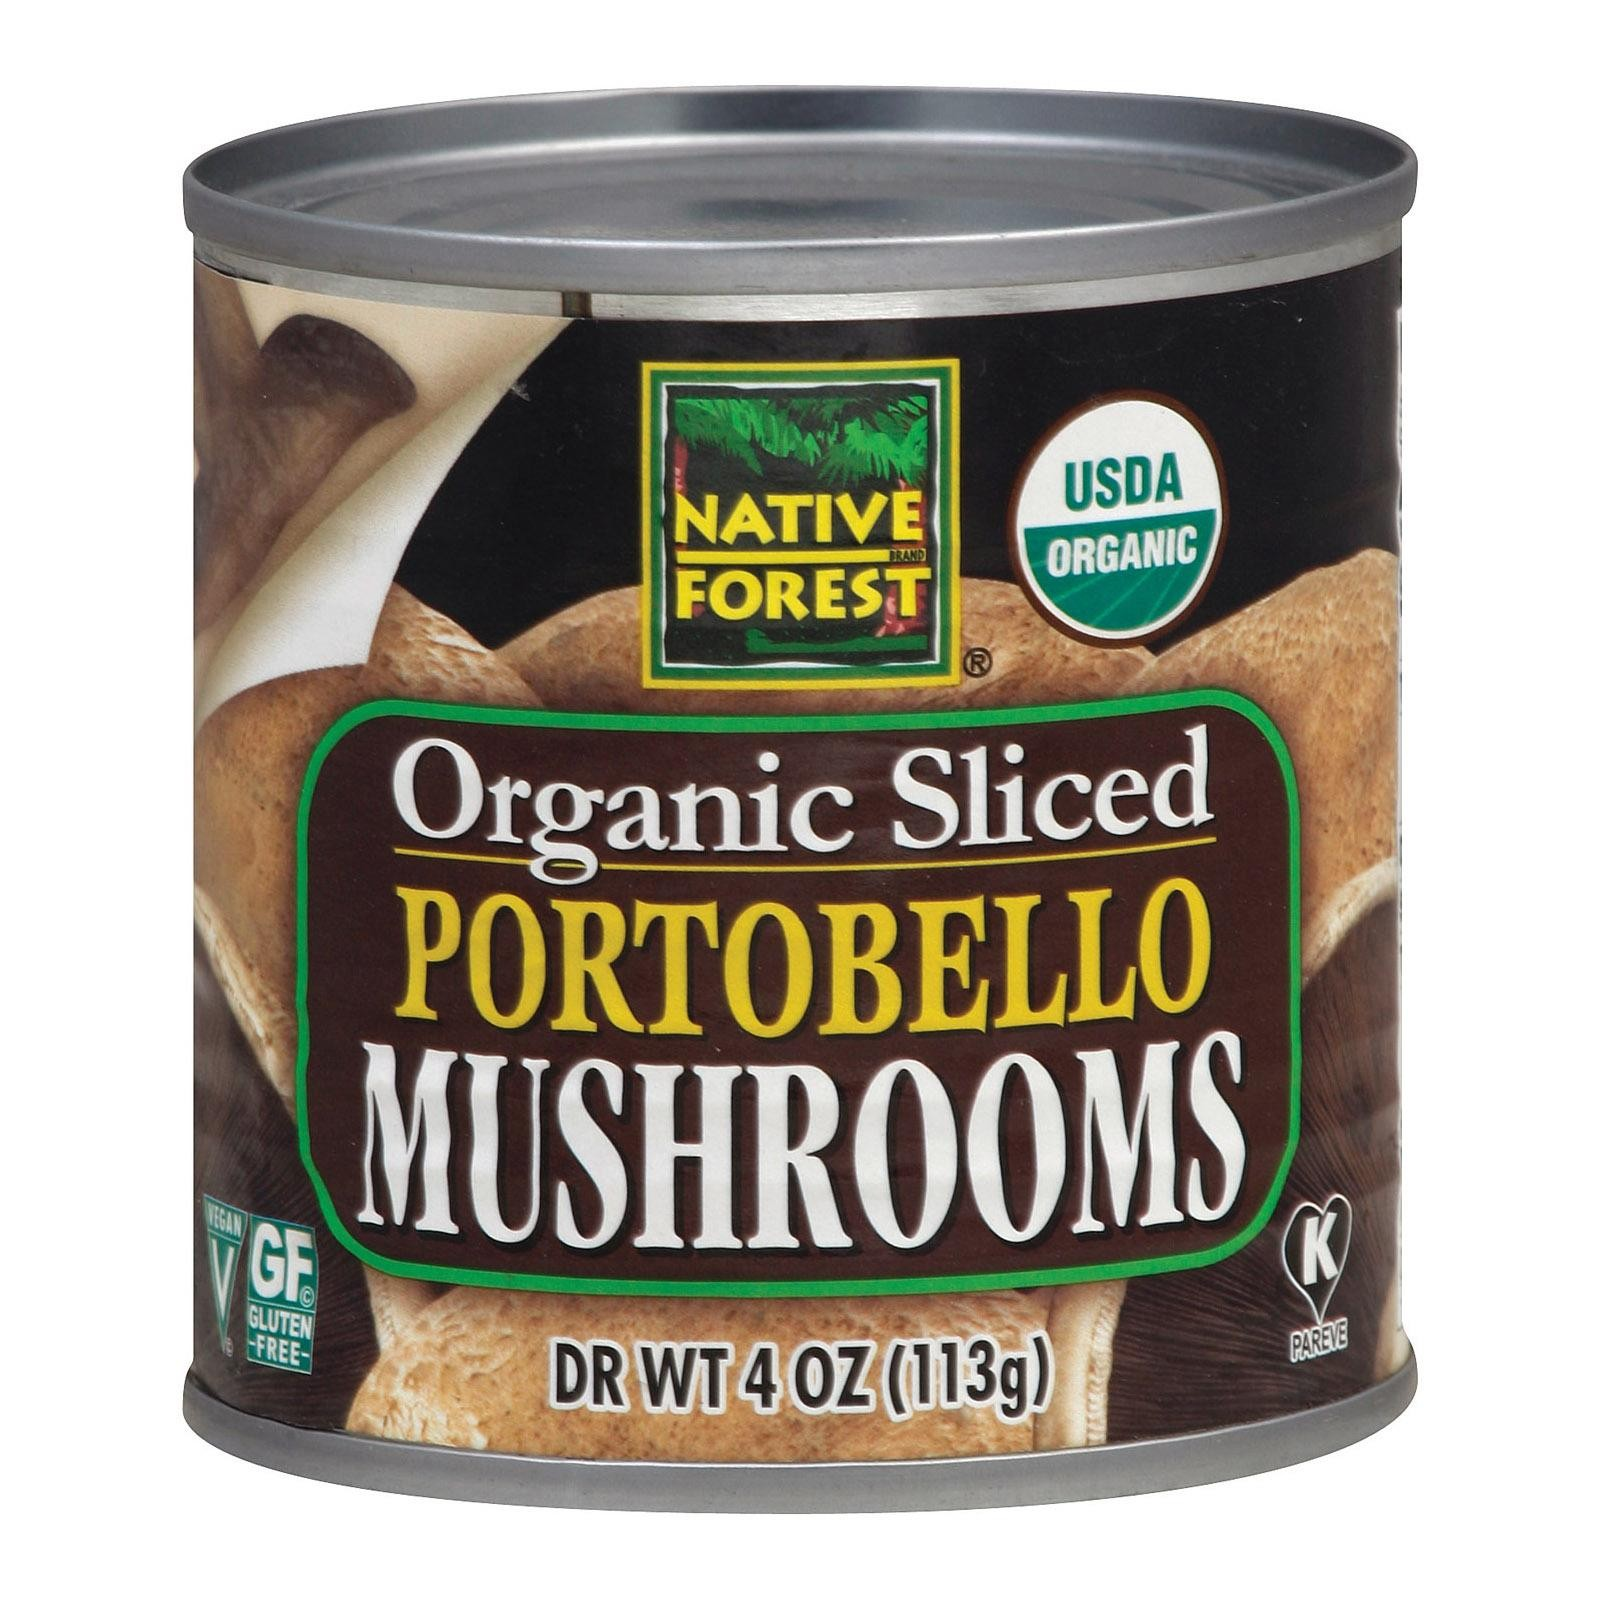 Native Forest Organic Sliced Portobello - Mushrooms - Pack of 12 - 4 Oz.